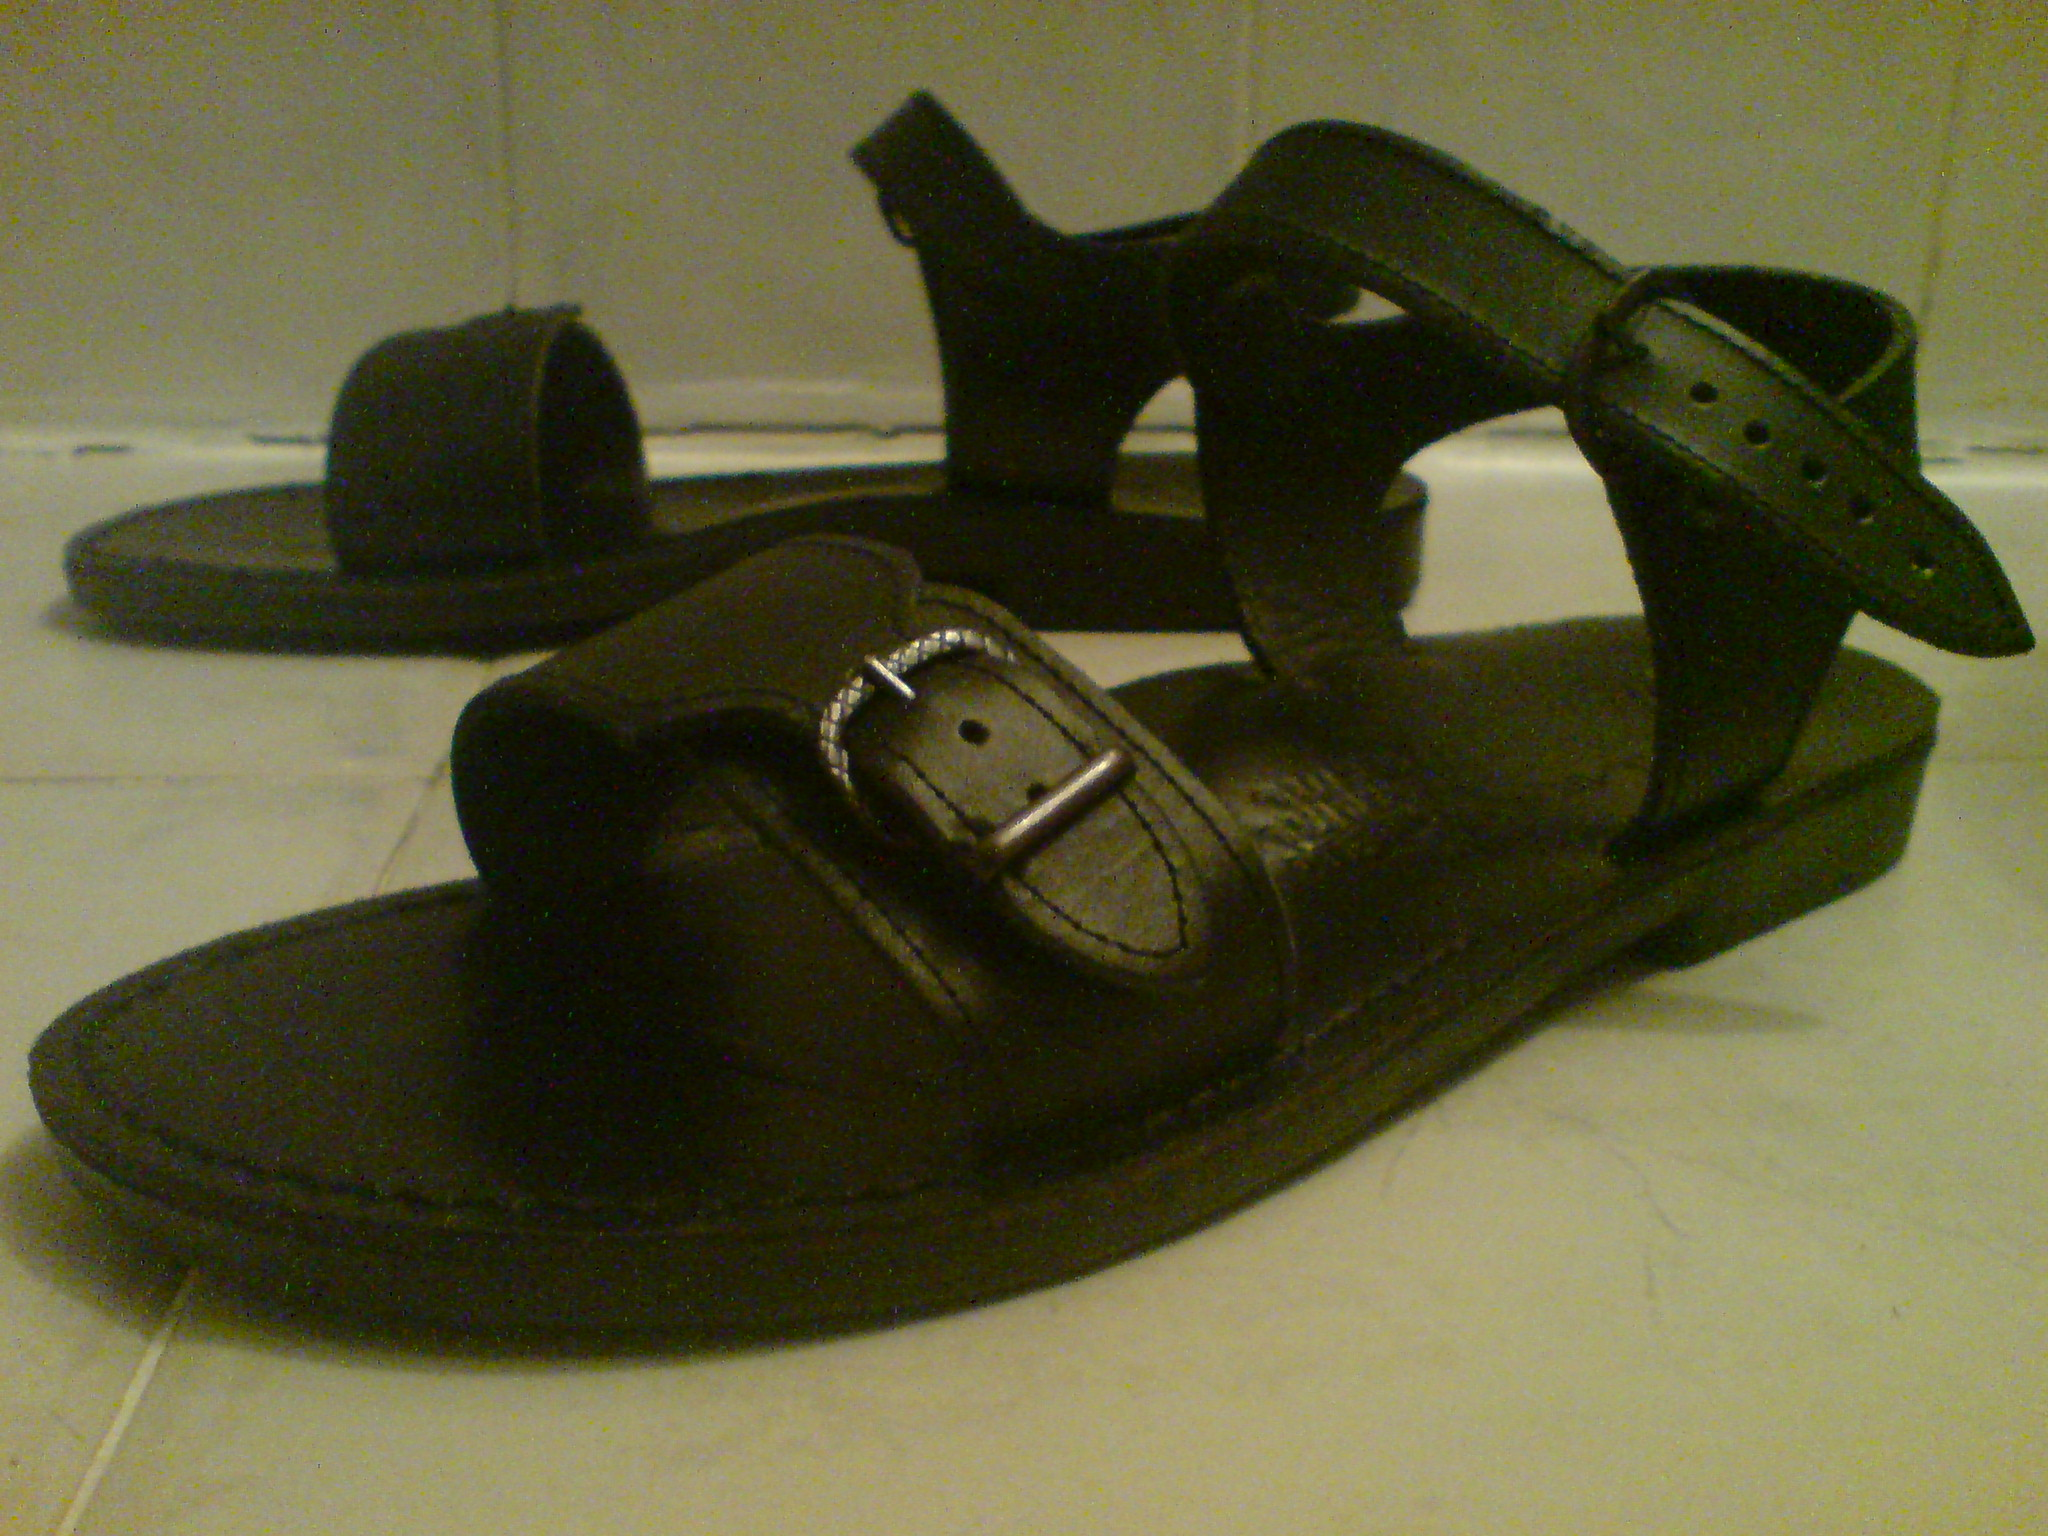 5d1a40cfd24 Biblical sandals - Wikipedia